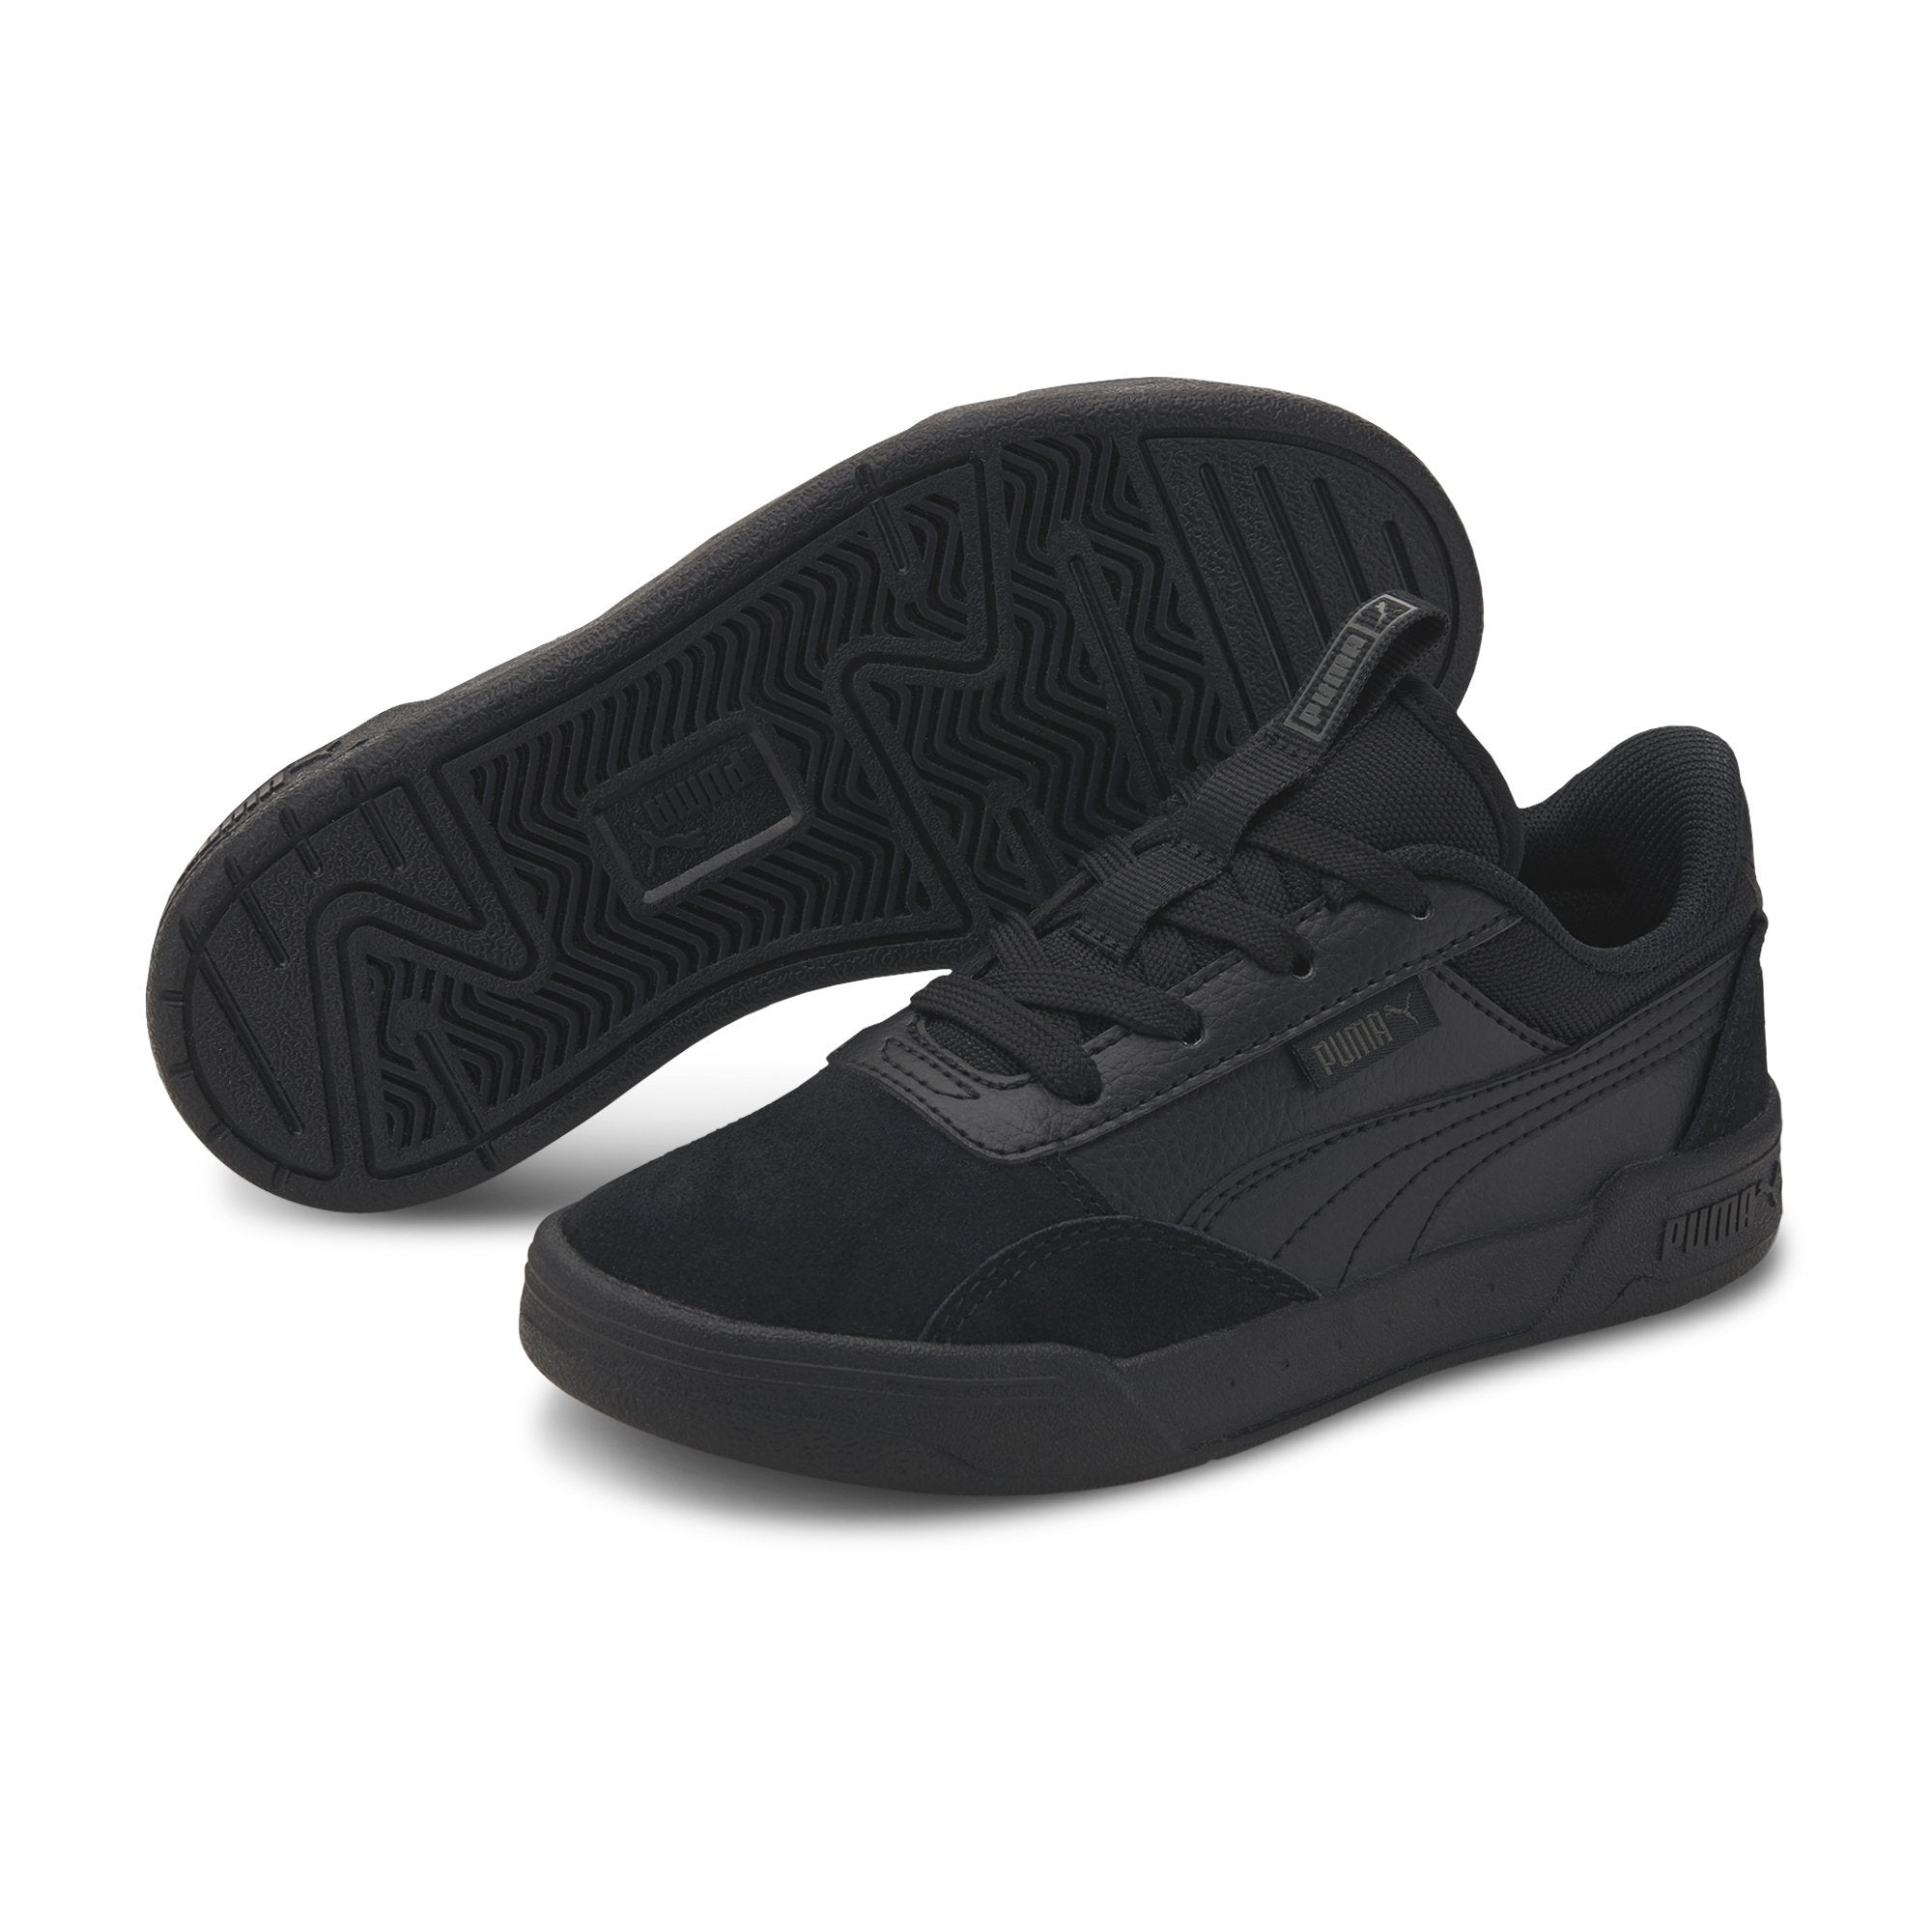 Puma C-Skate PS - Puma Black-Puma Black SP-Footwear-Kids Puma